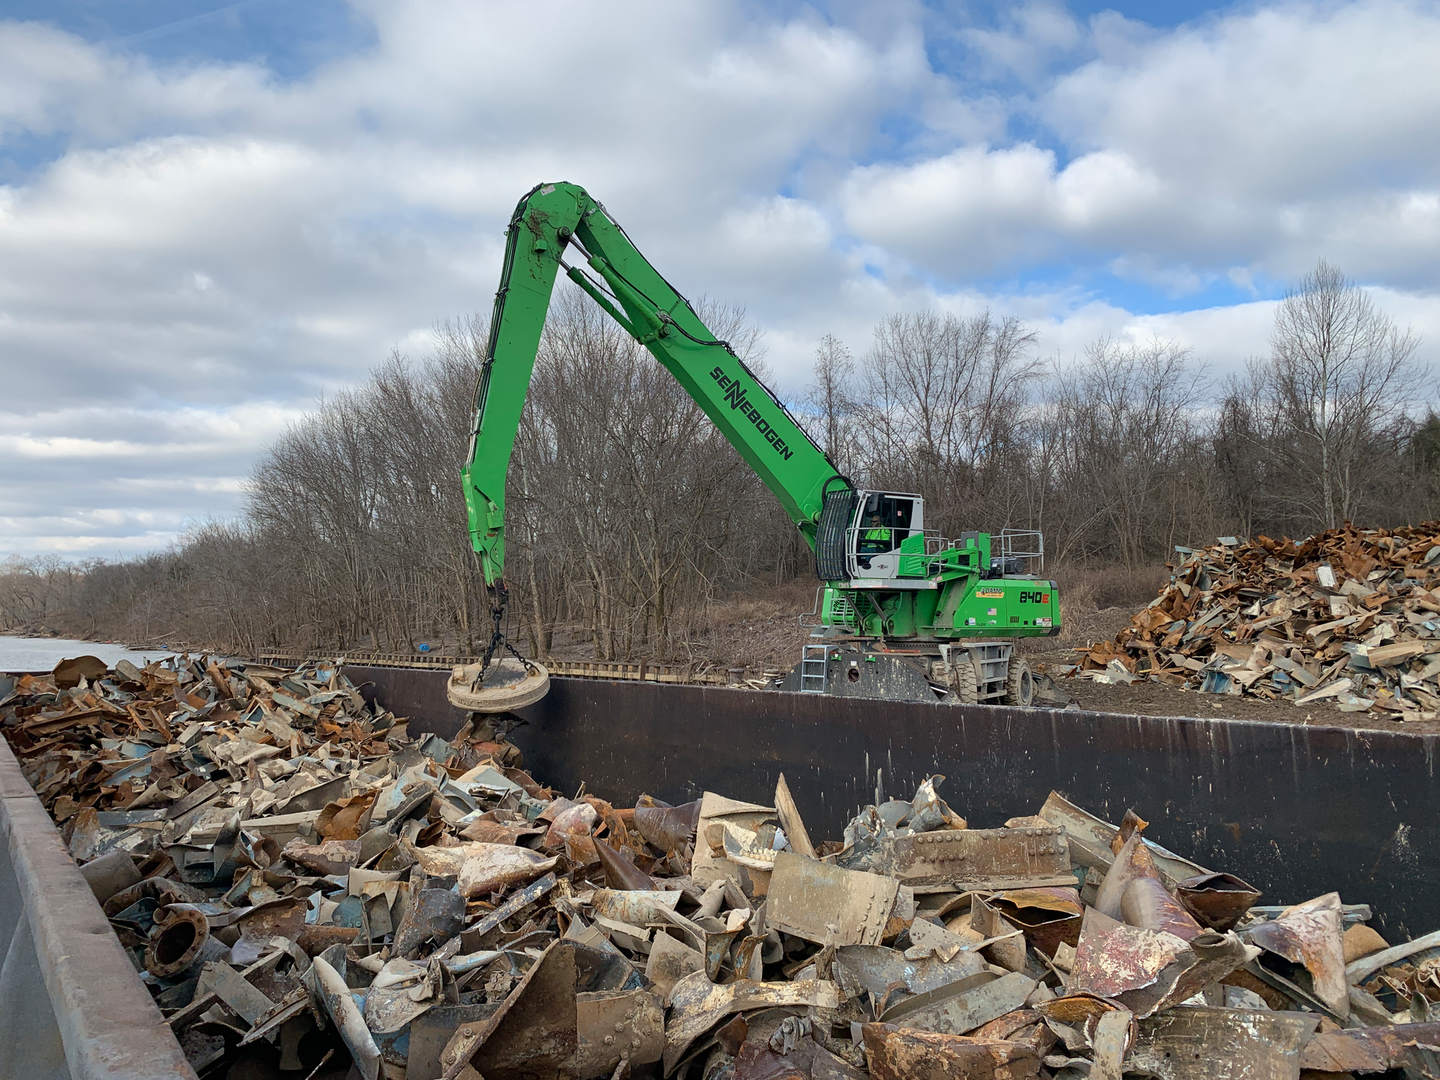 Adamo Group uses its Sennebogen material handlers with a magnet to pull rebar and other ferrous scrap from the piles of rubble, reducing landfilled material and adding an additional revenue stream.